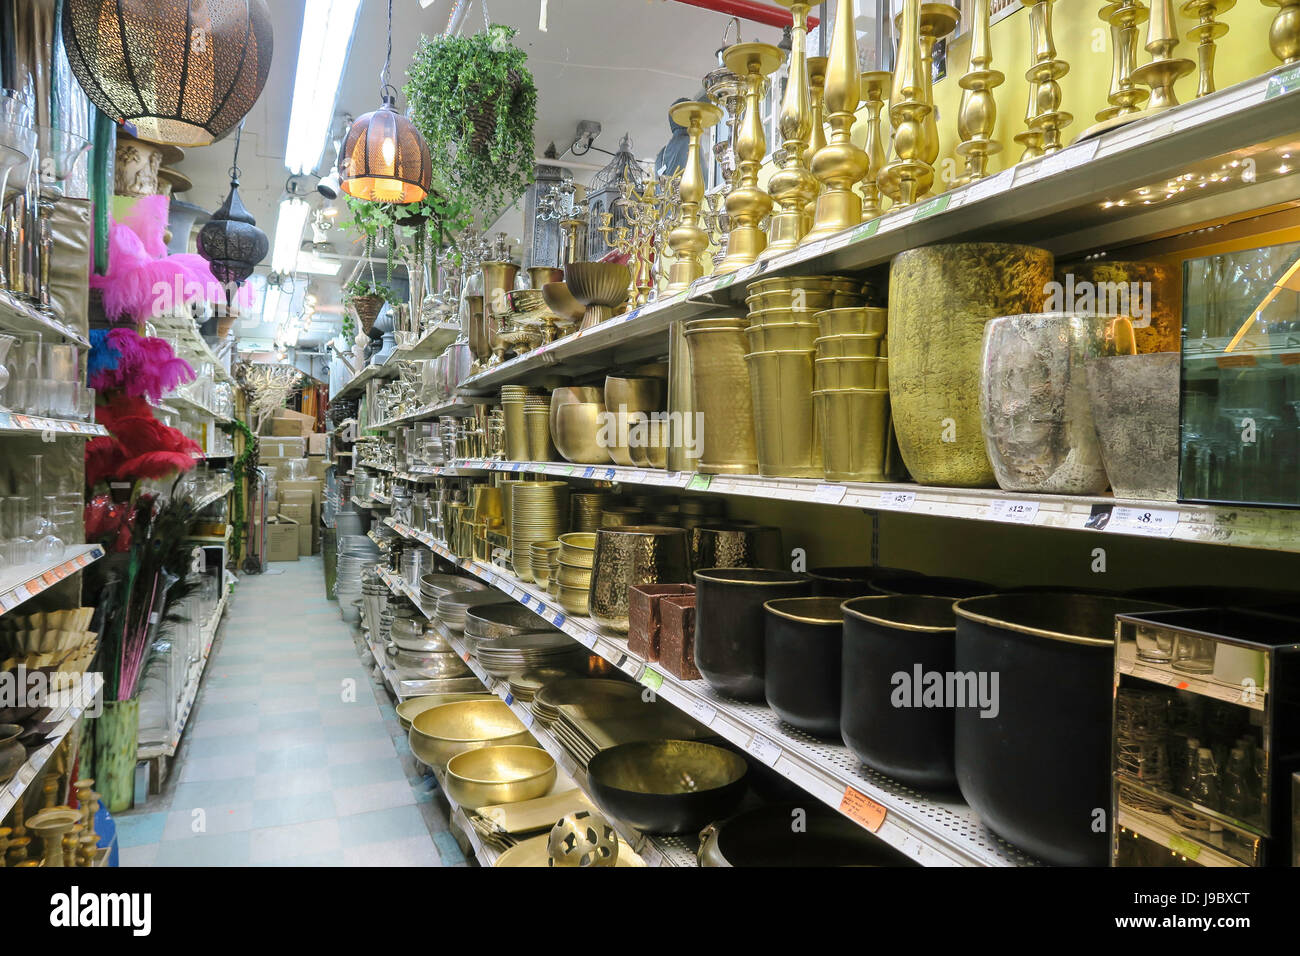 Attractive Jamali Floral U0026 Garden Supplies In The Flower District, New York City, USA